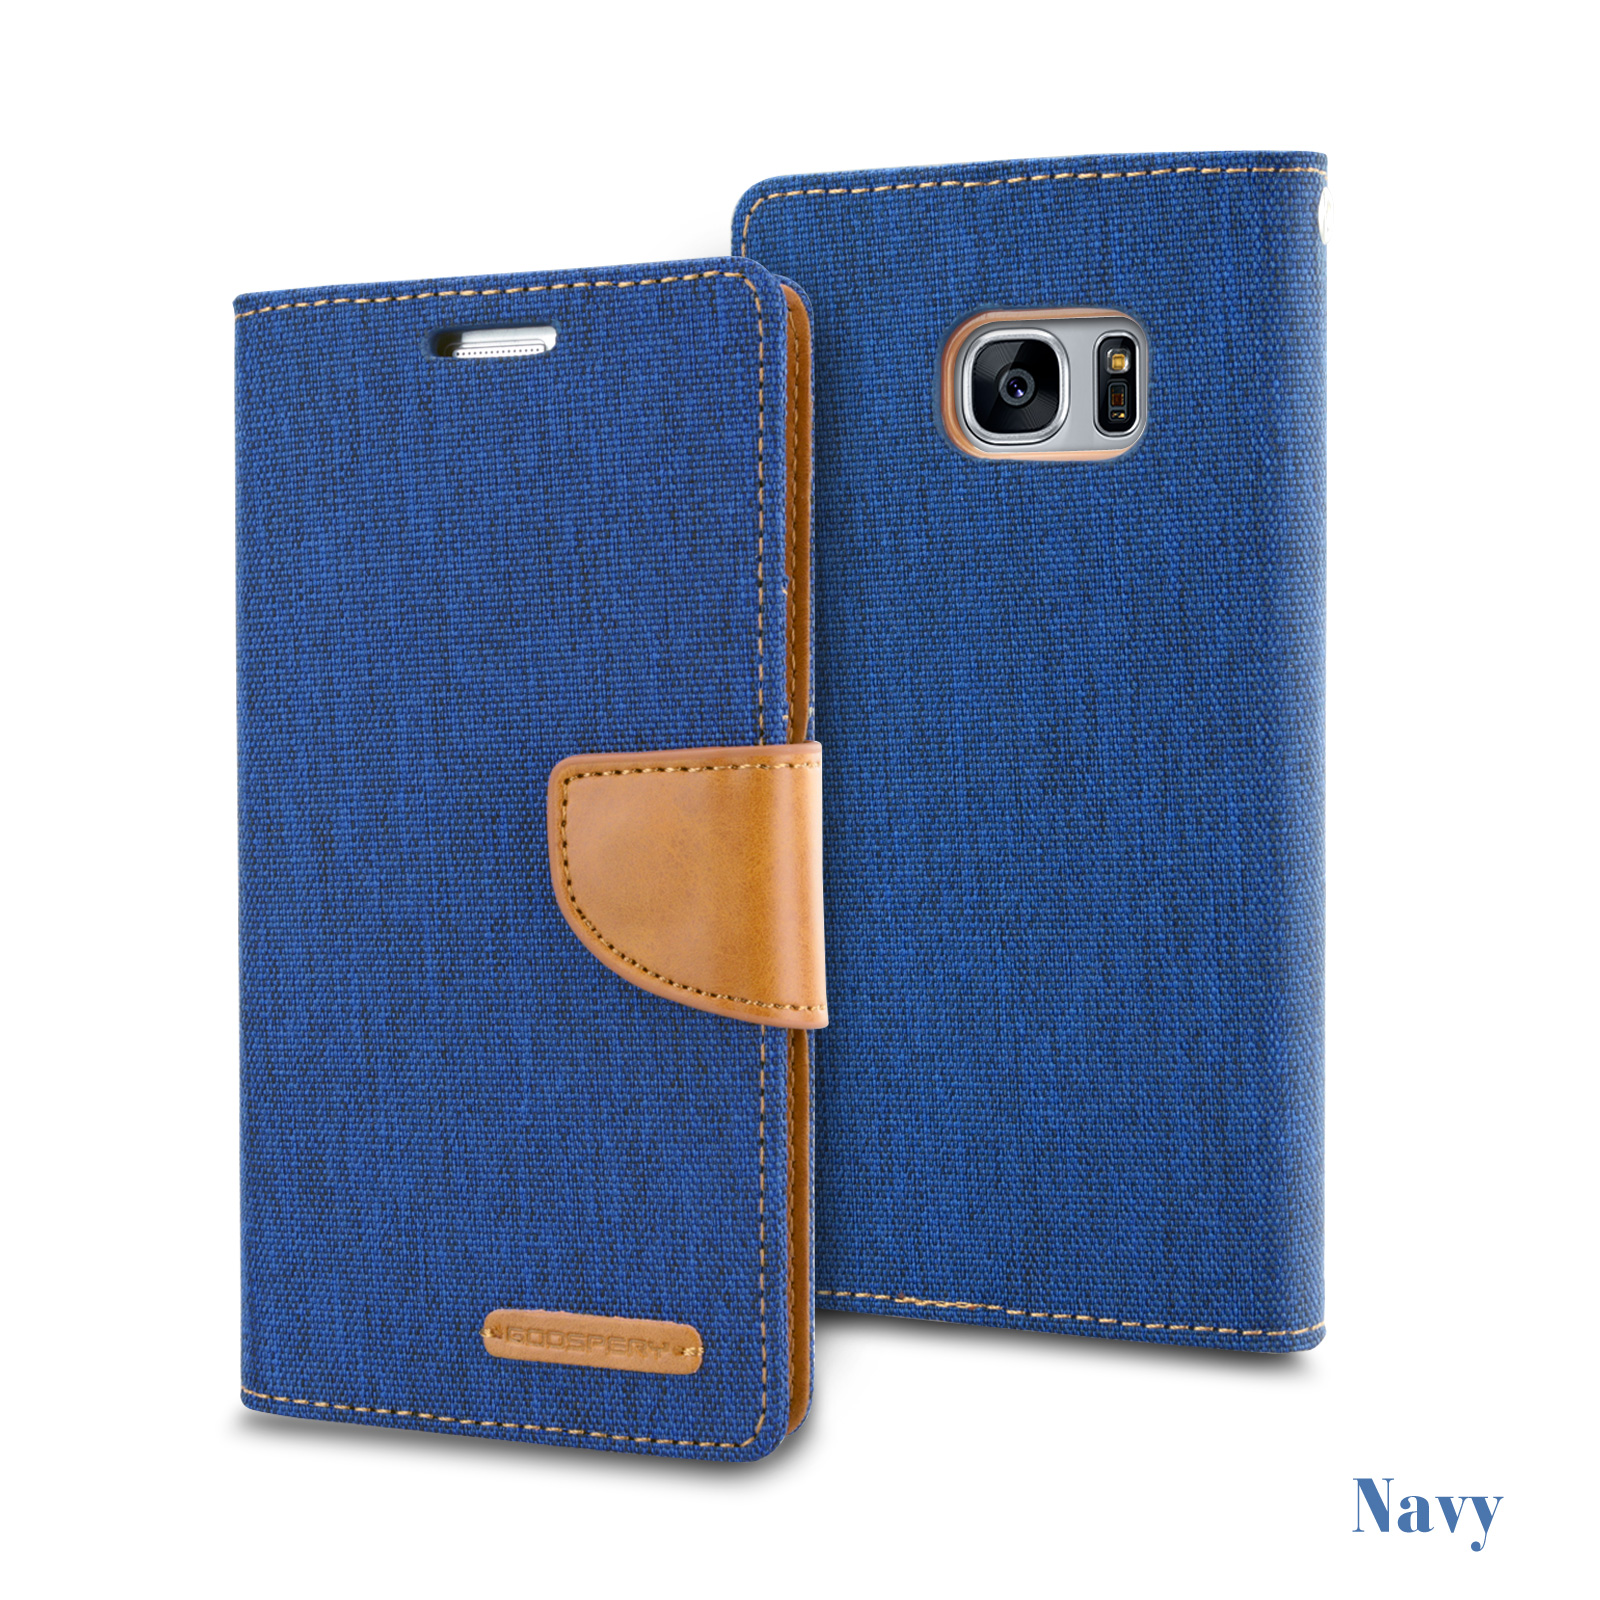 Samsung S7 Edge S5 Mercury Leather Card Wallet Case Cover Goospery Galaxy S6 Canvas Diary Navy For